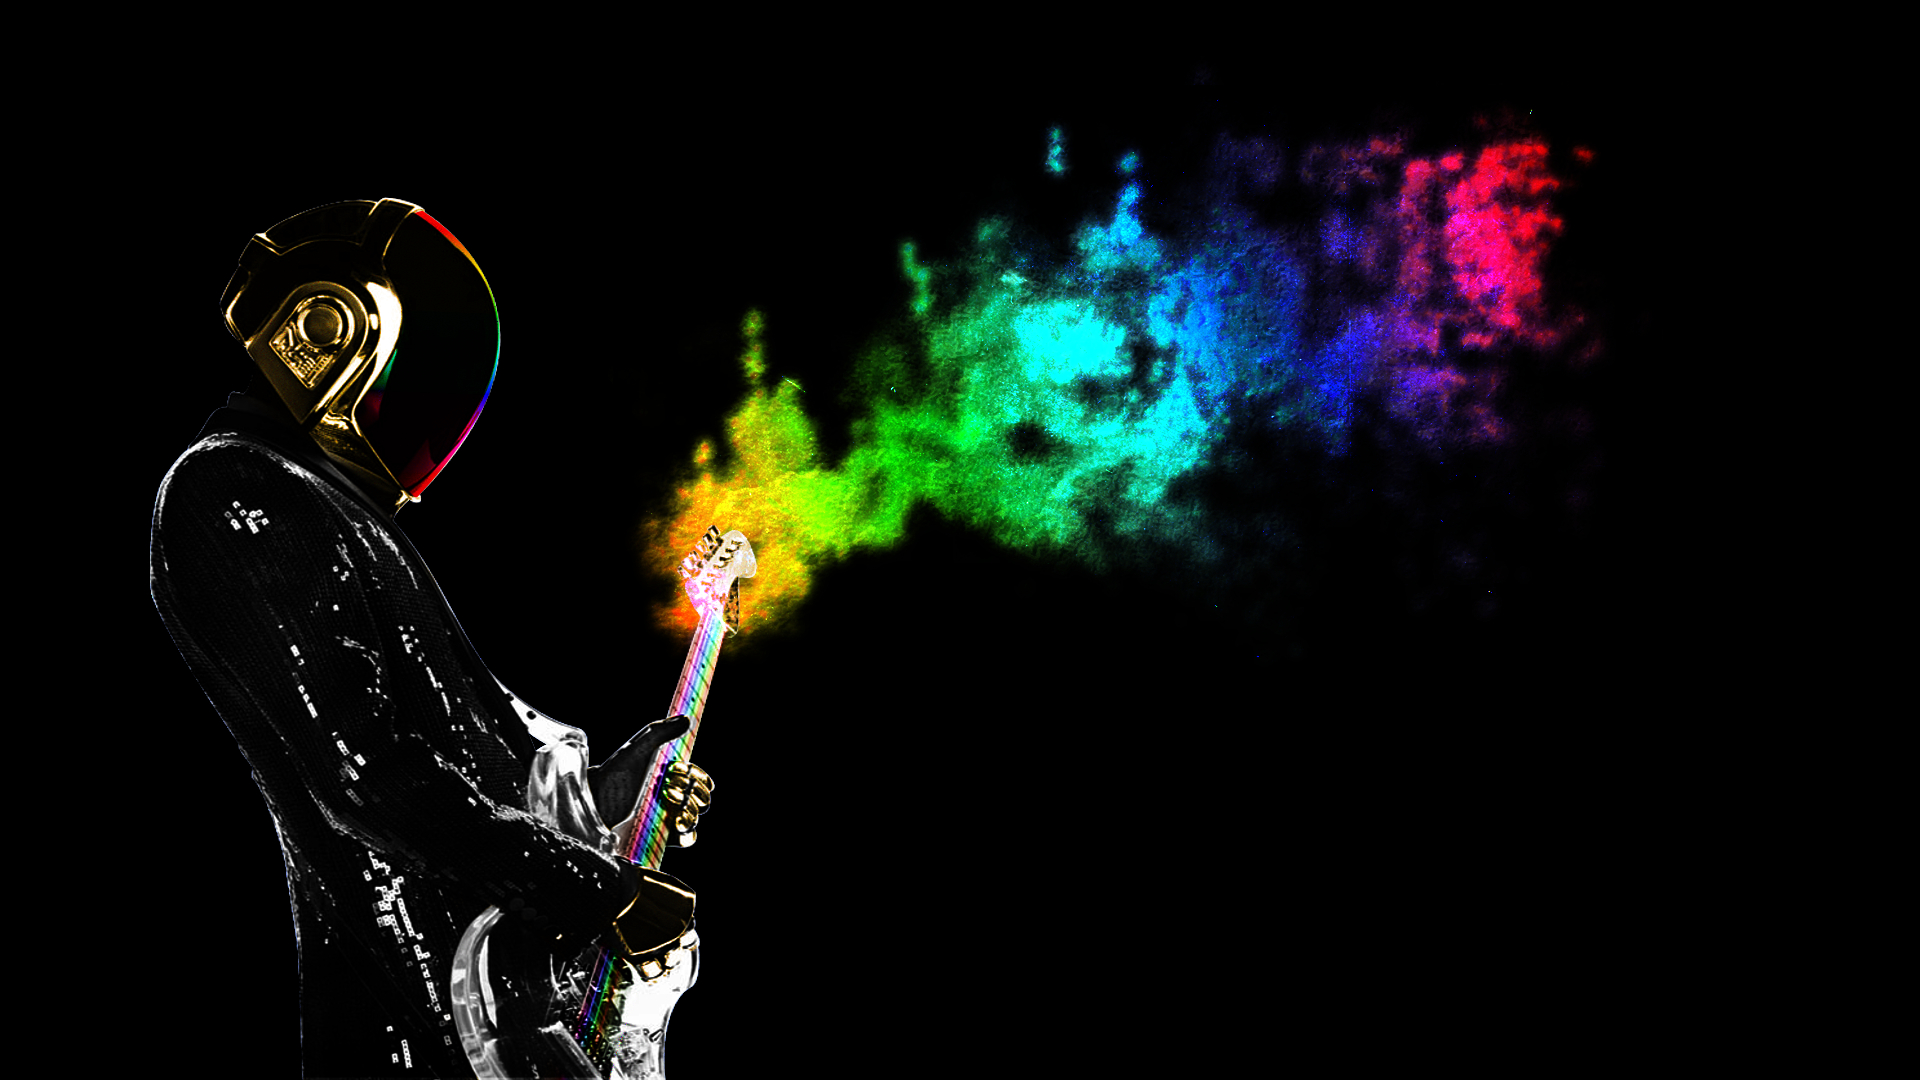 High Def Collection 40 Full HD Funk Wallpapers In HQFX 1920x1080